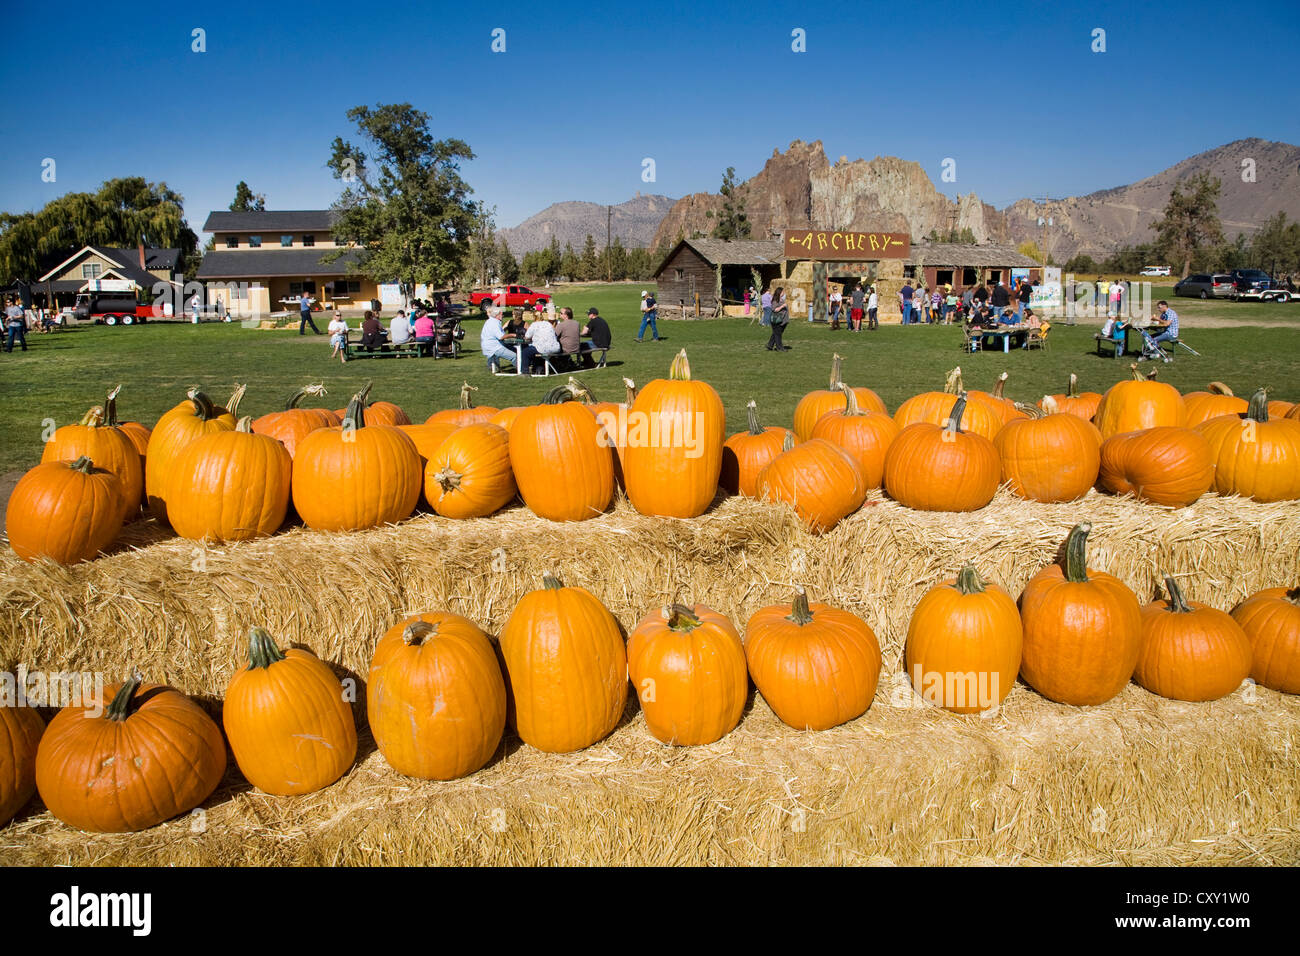 A row of large pumpkins on a field at a 'Pumpkin Patch' in October for halloween  - Stock Image